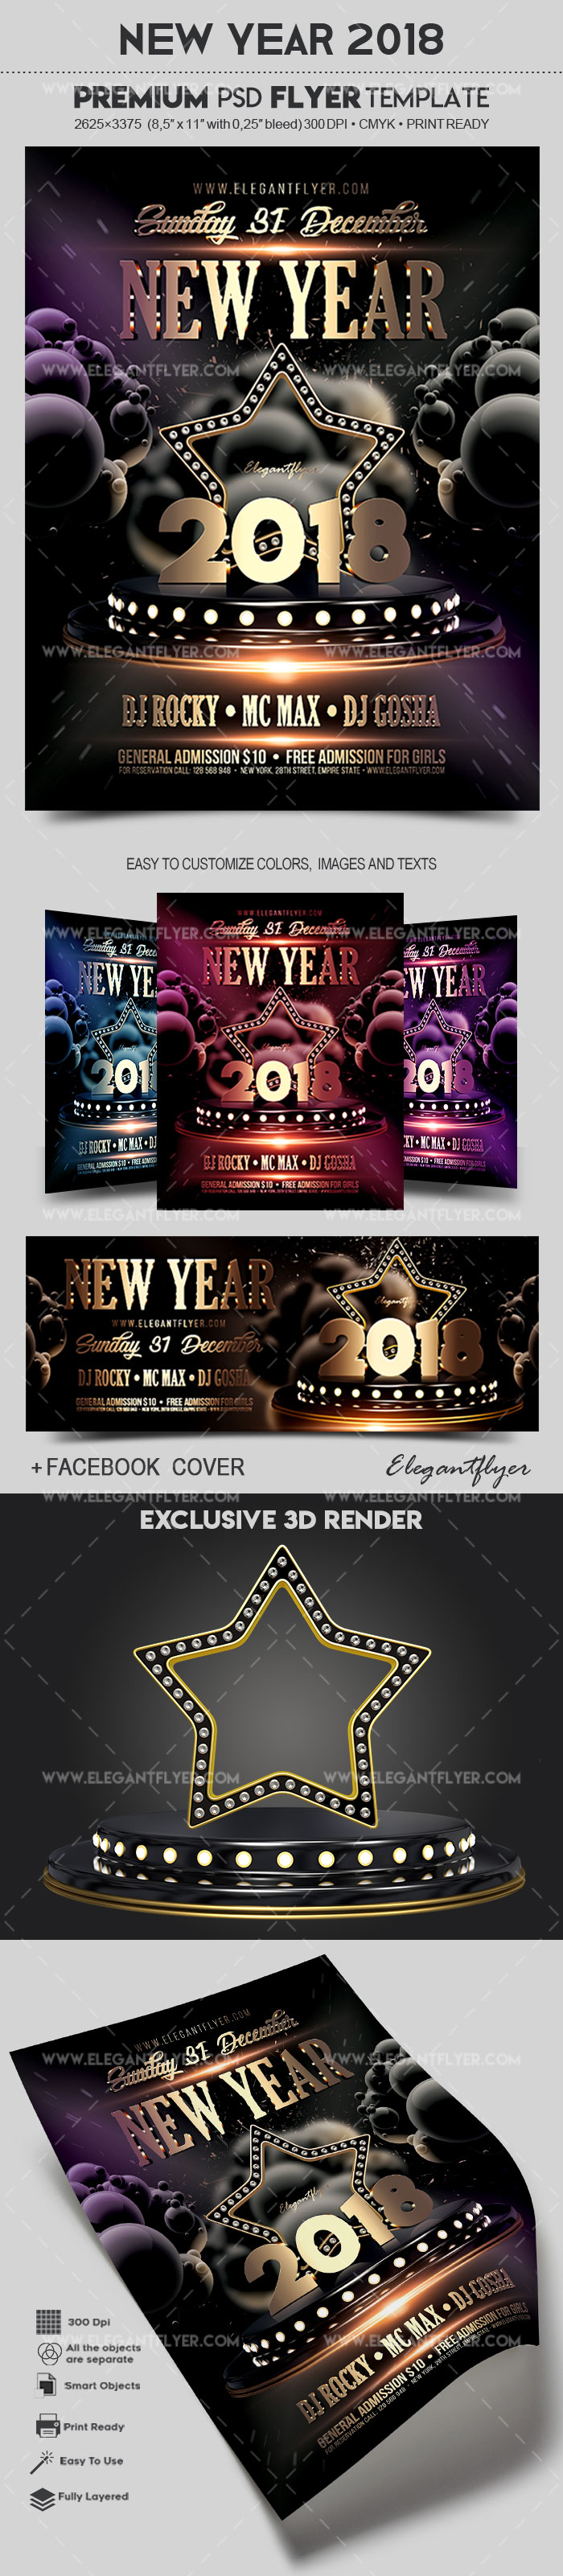 New Year 2018 – Flyer PSD Template + Facebook Cover